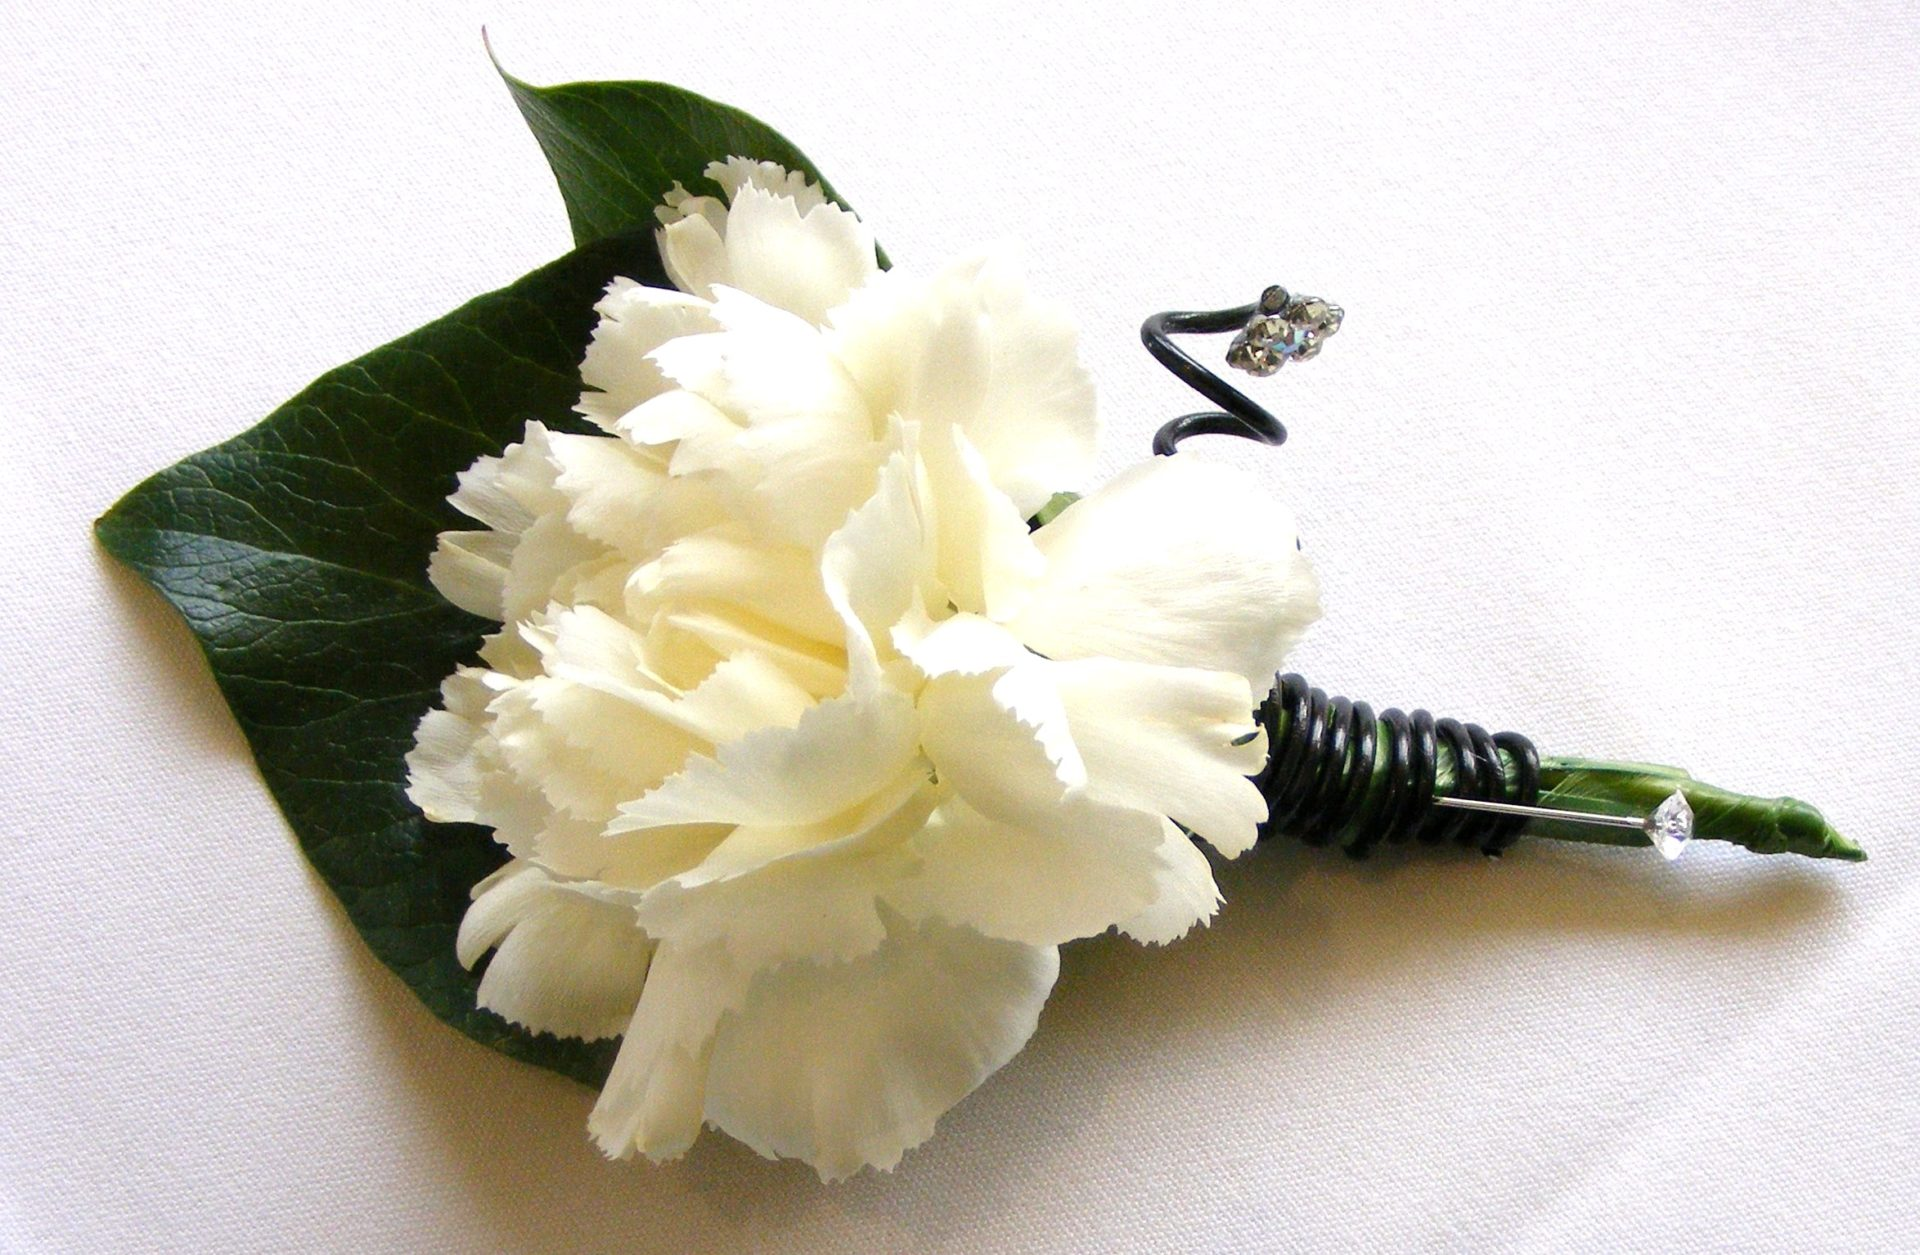 White carnation buttonhole with decorative wire